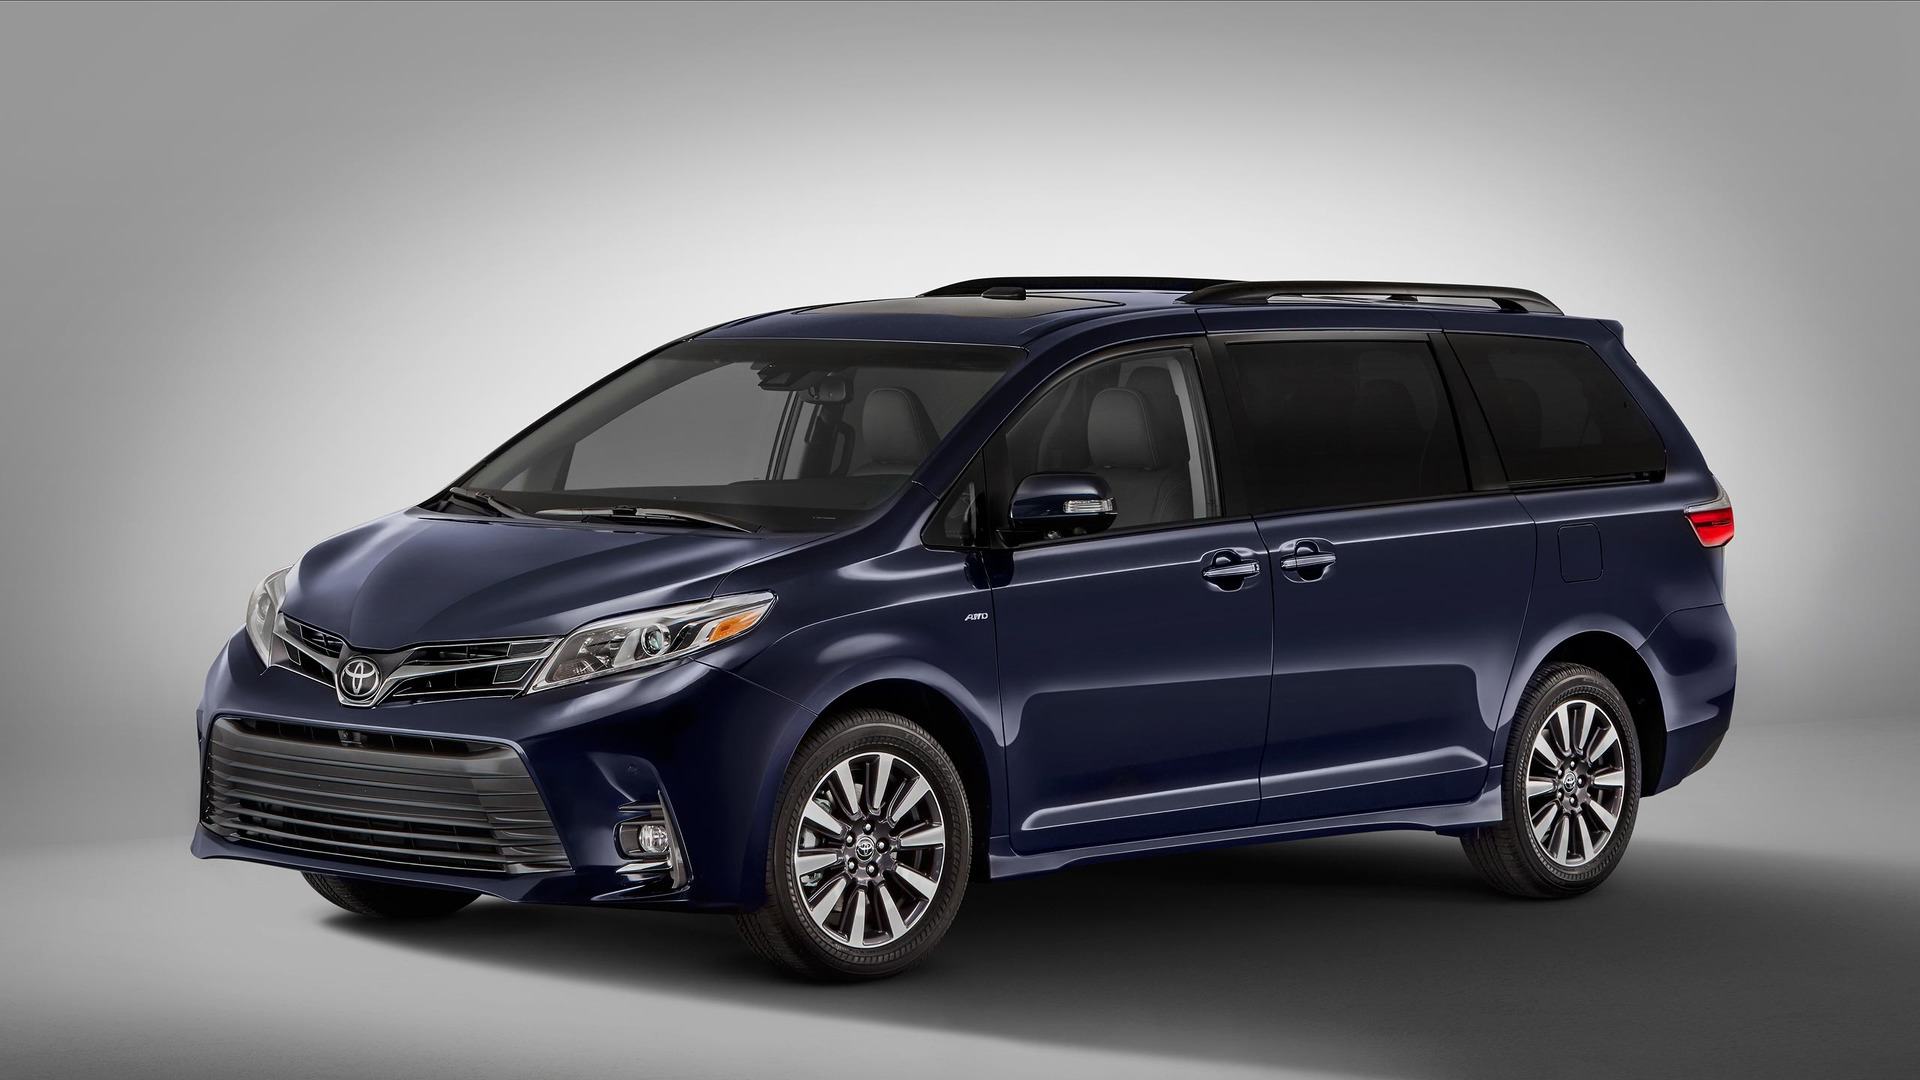 Used Cars Toyota Sienna 2018 Toyota Sienna Features Contentious New Face, Interior Updates